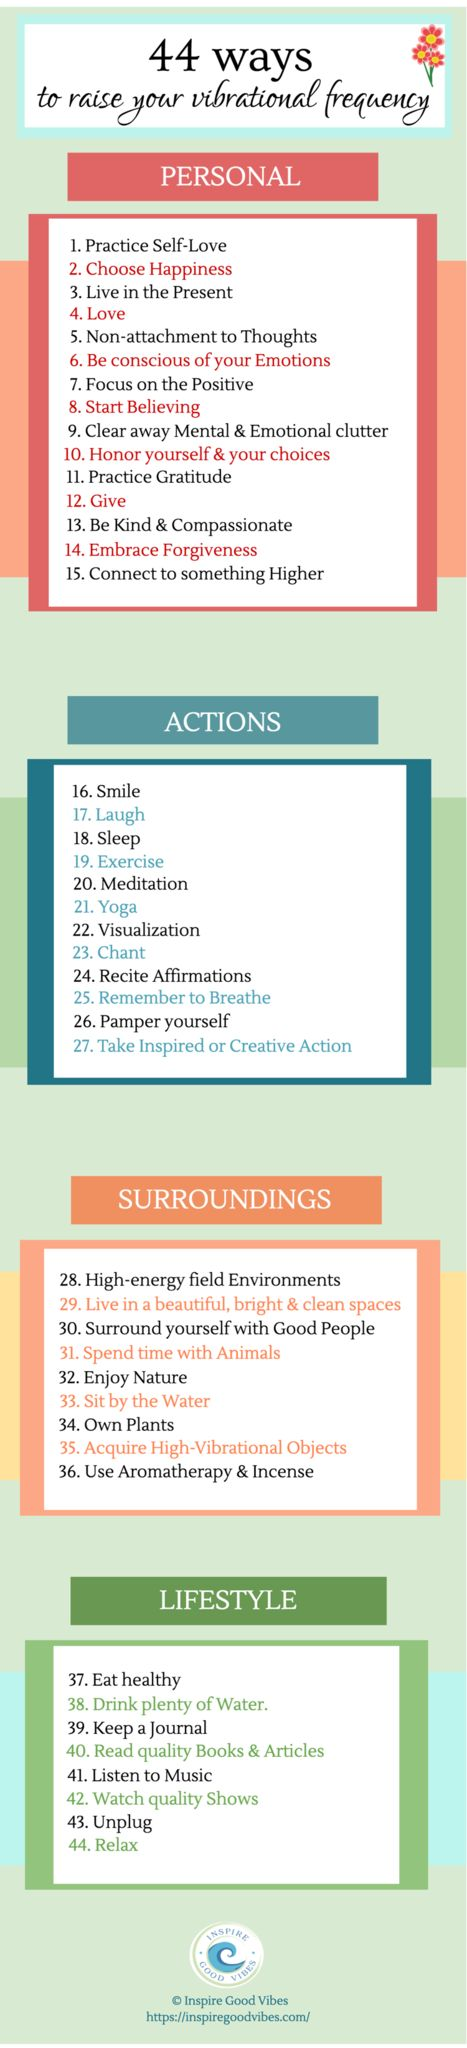 44 ways to raise your vibrational frequency infographic - check out the blog post for more details!